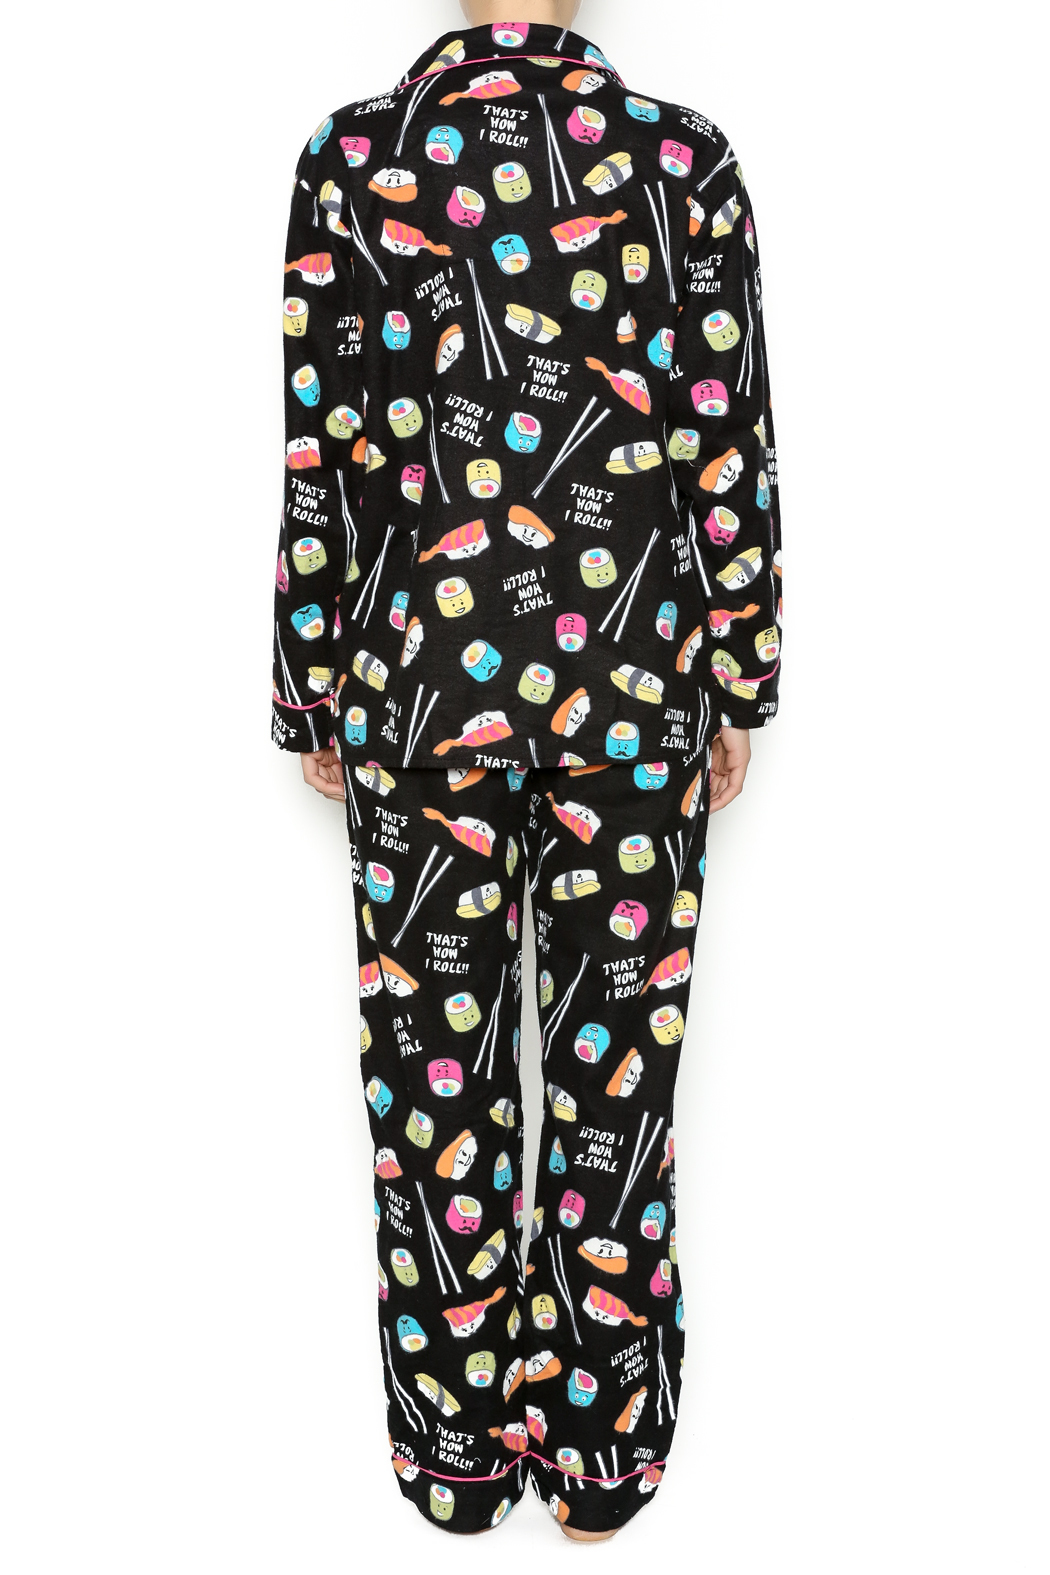 Free shipping on women's sleepwear, pajamas, loungewear, and robes at hingcess-serp.cf Shop for pajamas, nighties, tanks, shorts, joggers, chemises, nightgowns.